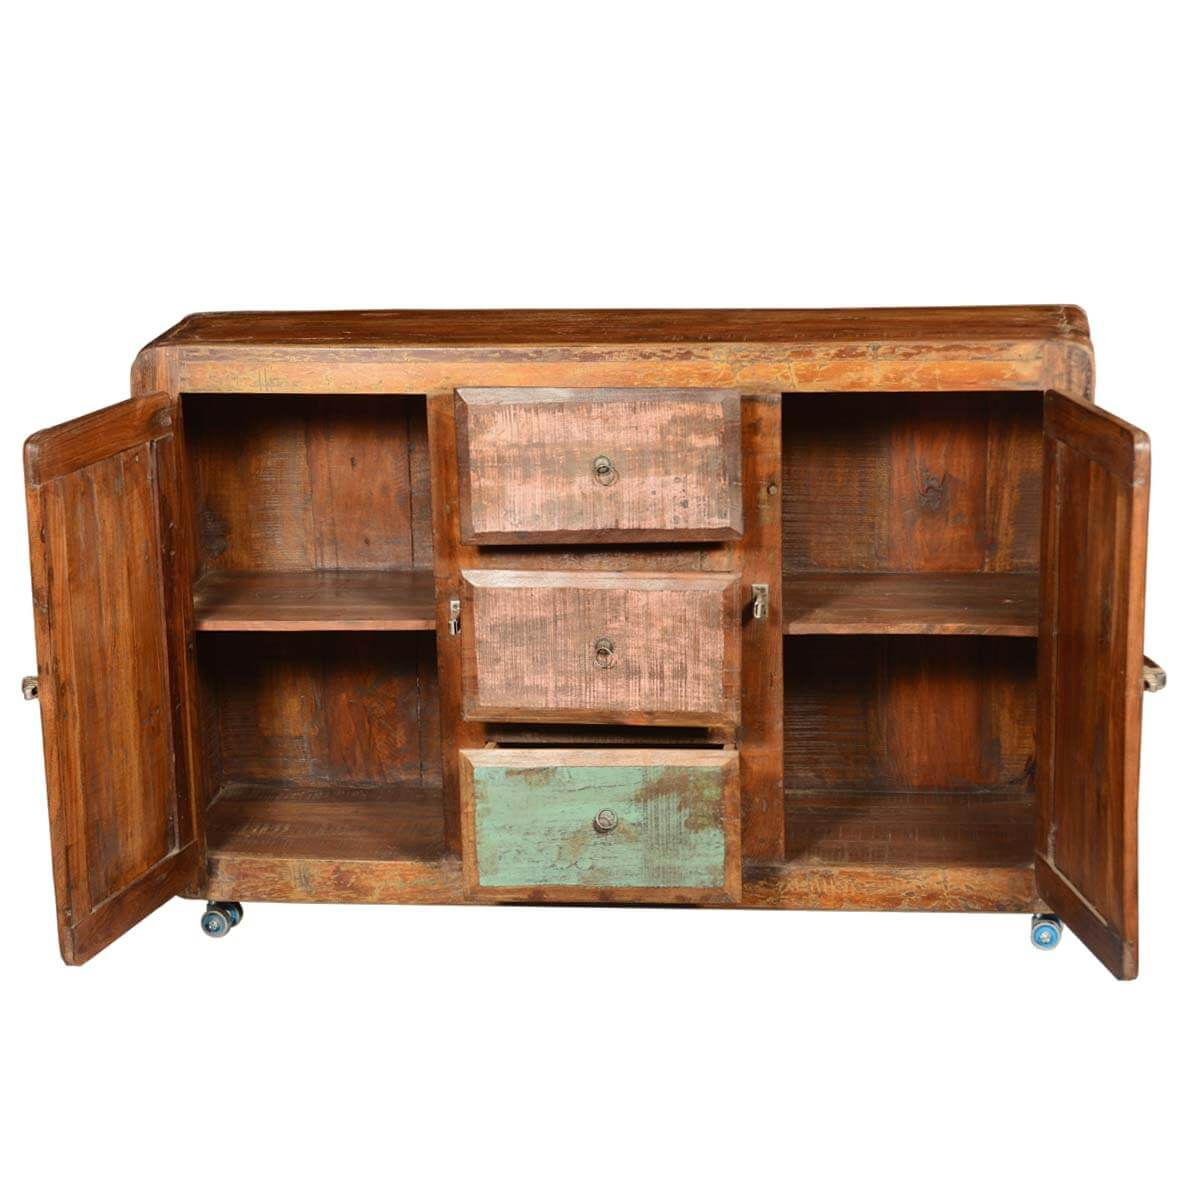 rustic reclaimed wood rolling wheels storage sideboard buffet. Black Bedroom Furniture Sets. Home Design Ideas